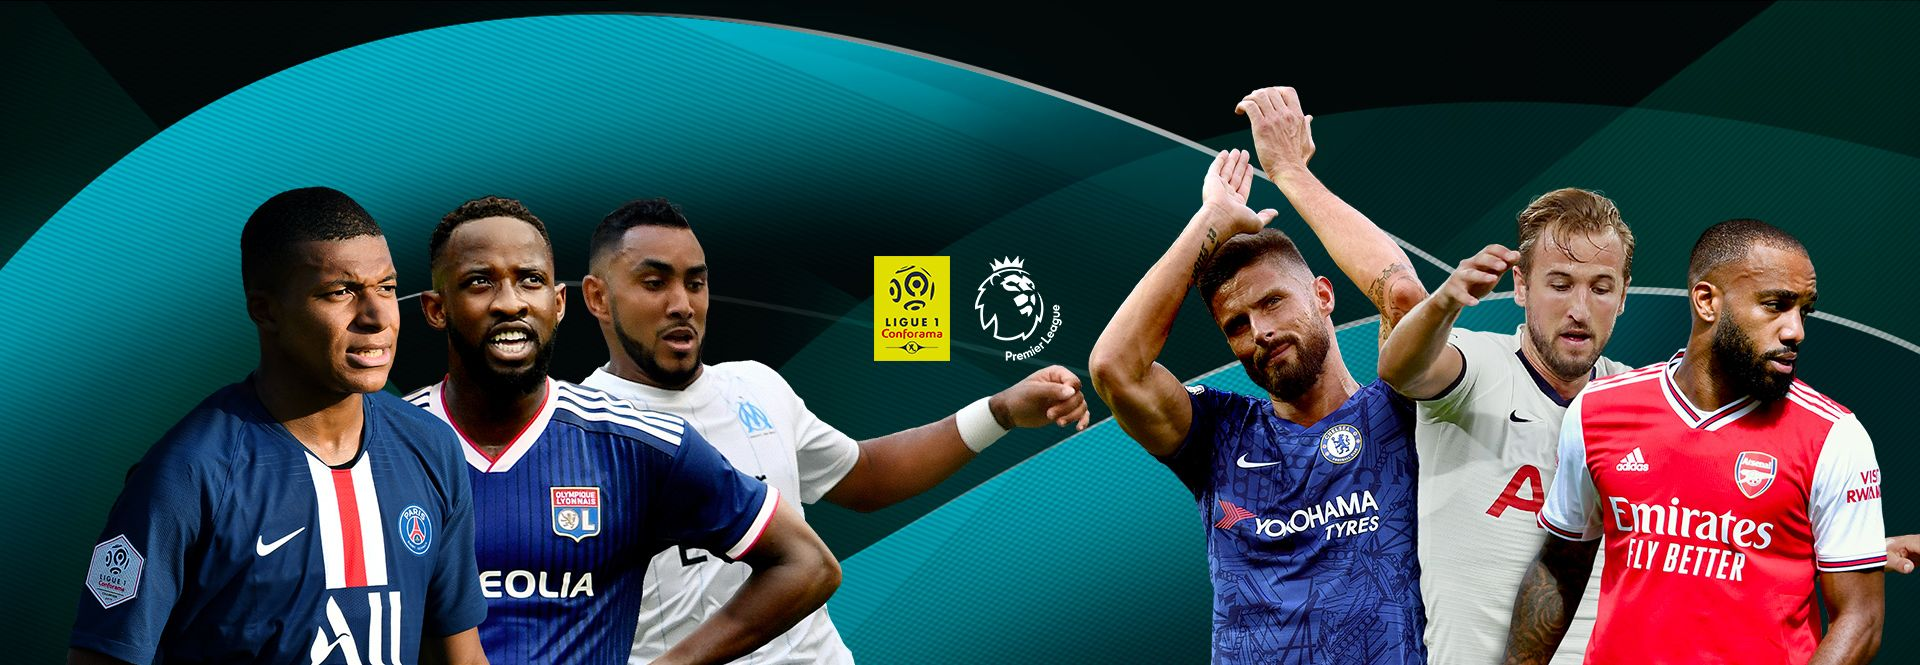 Sport en direct live ou replay : foot, rugby, golf, etc